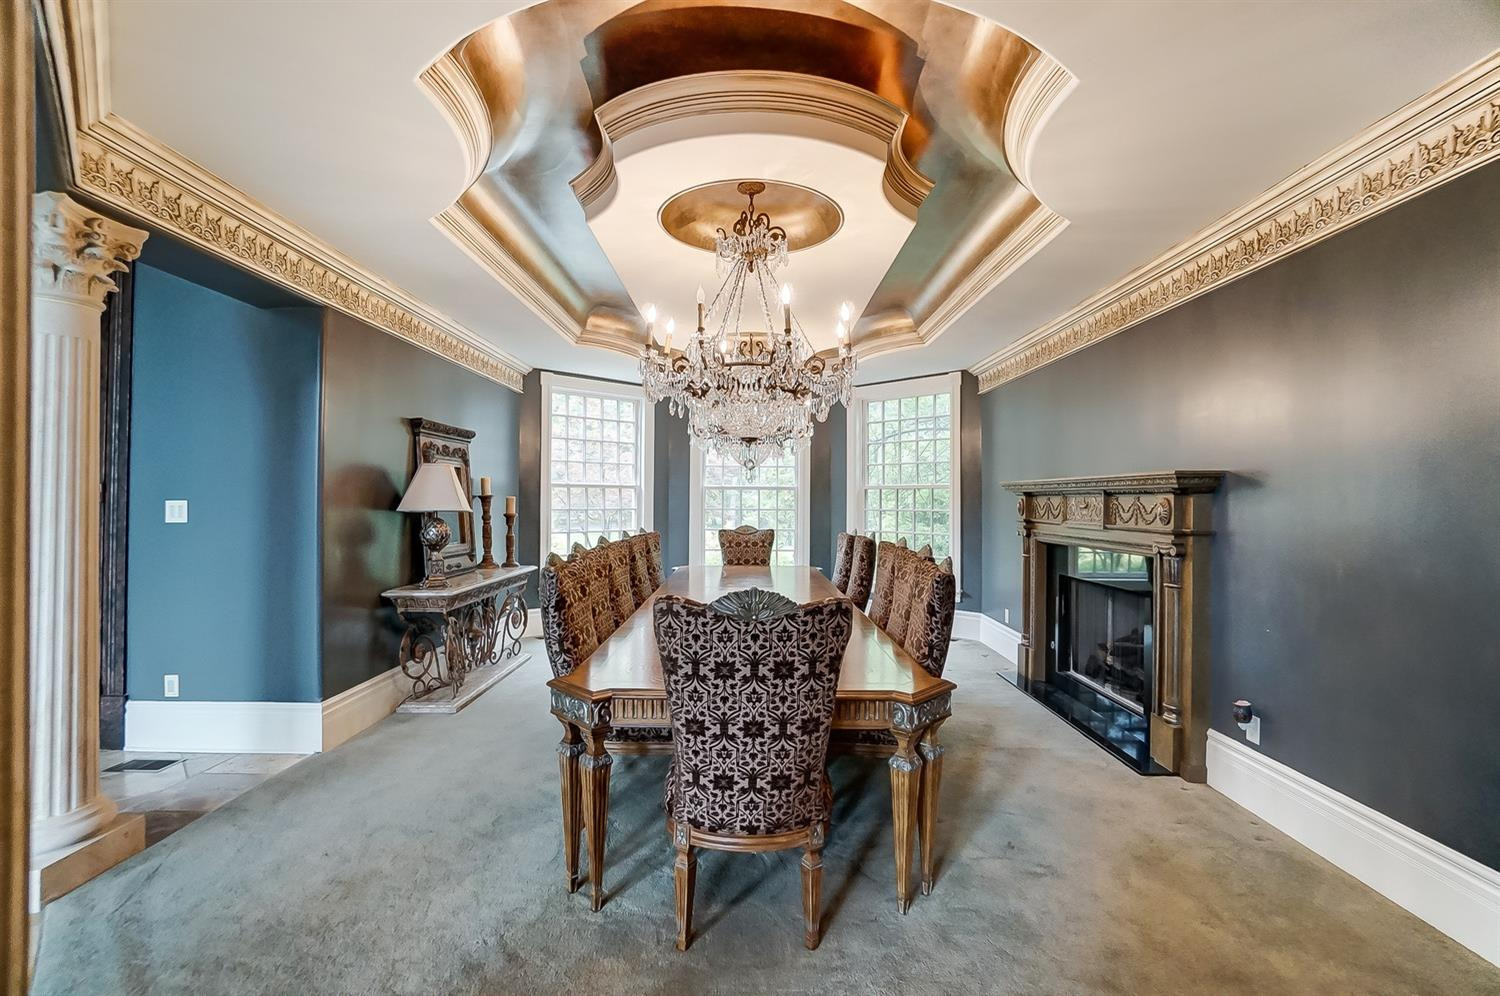 The formal dining room boasts a tray ceiling, ornate moldings, two chandeliers and a fireplace.